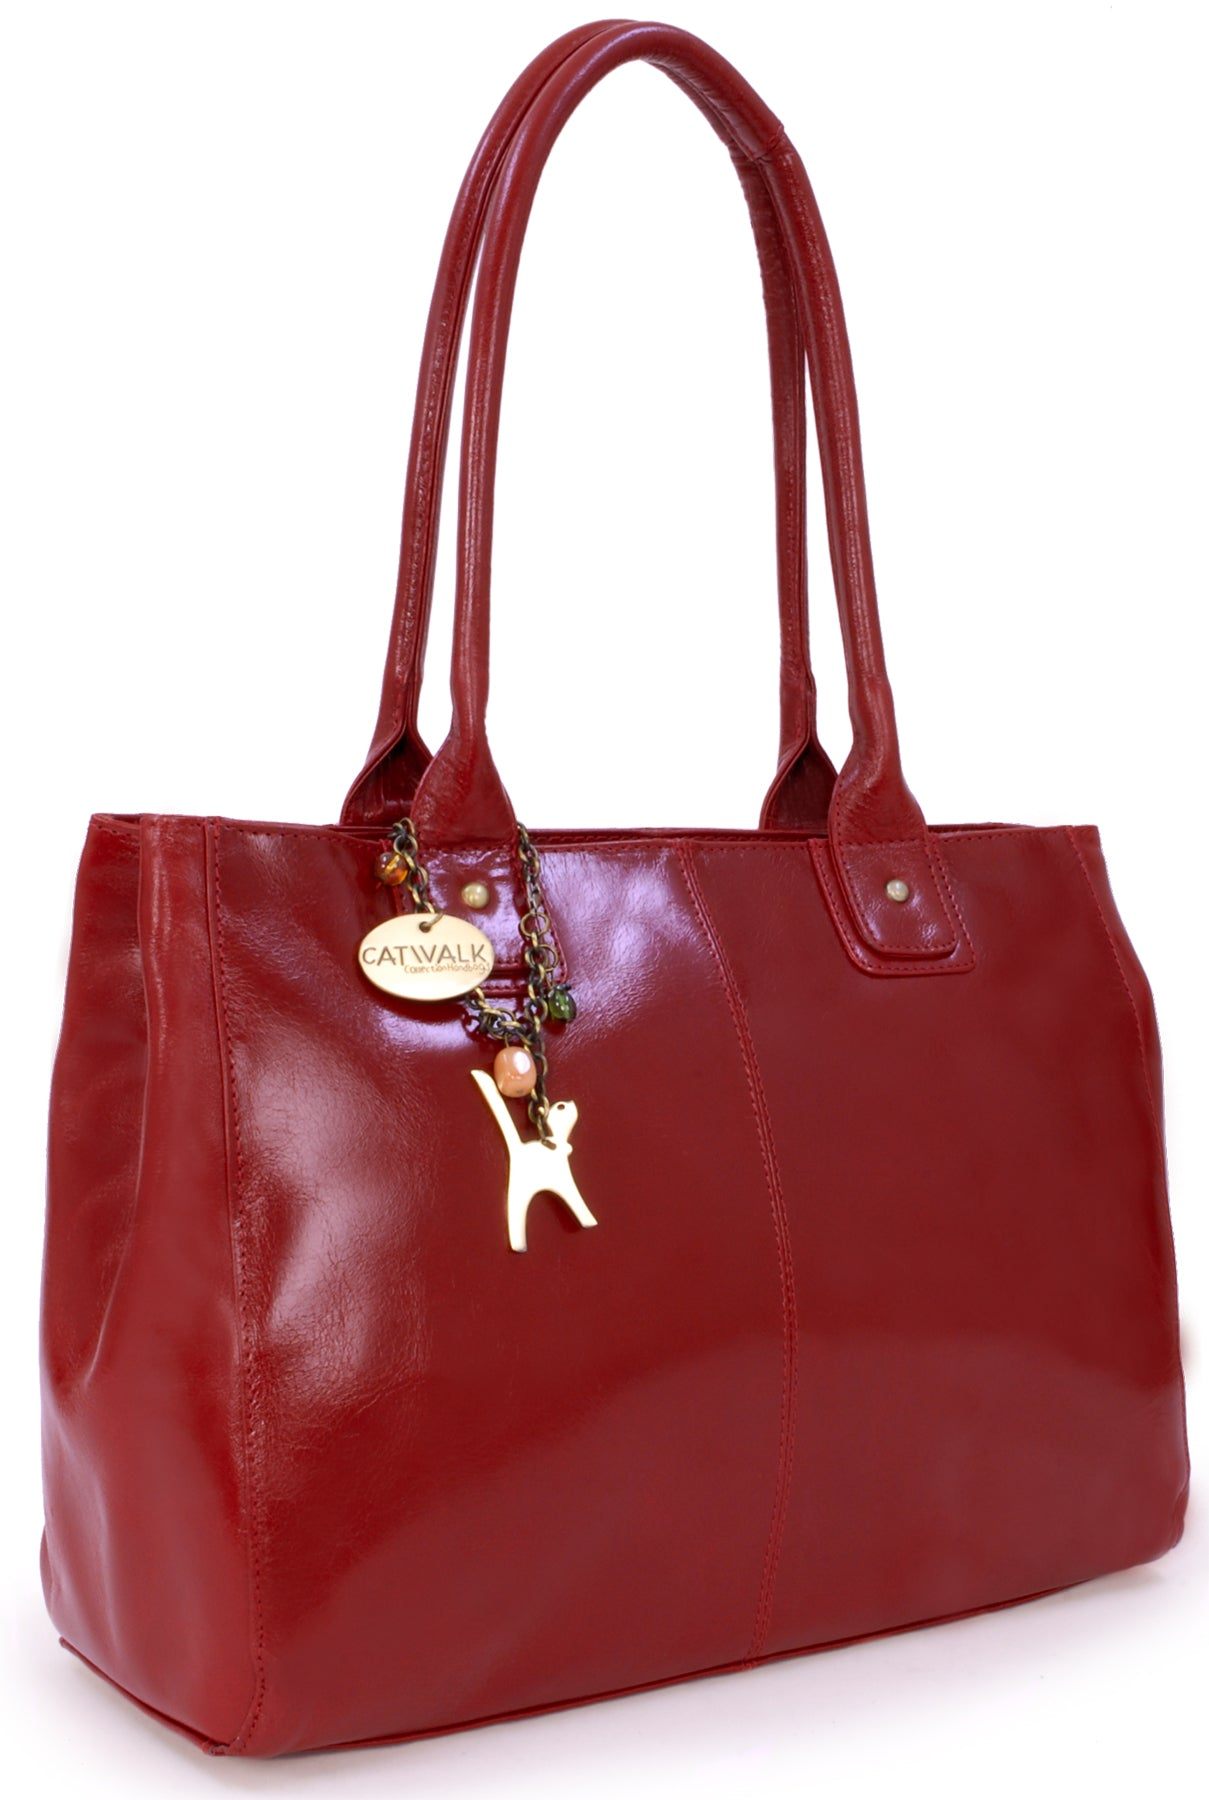 Kensington - Large Shoulder Tote